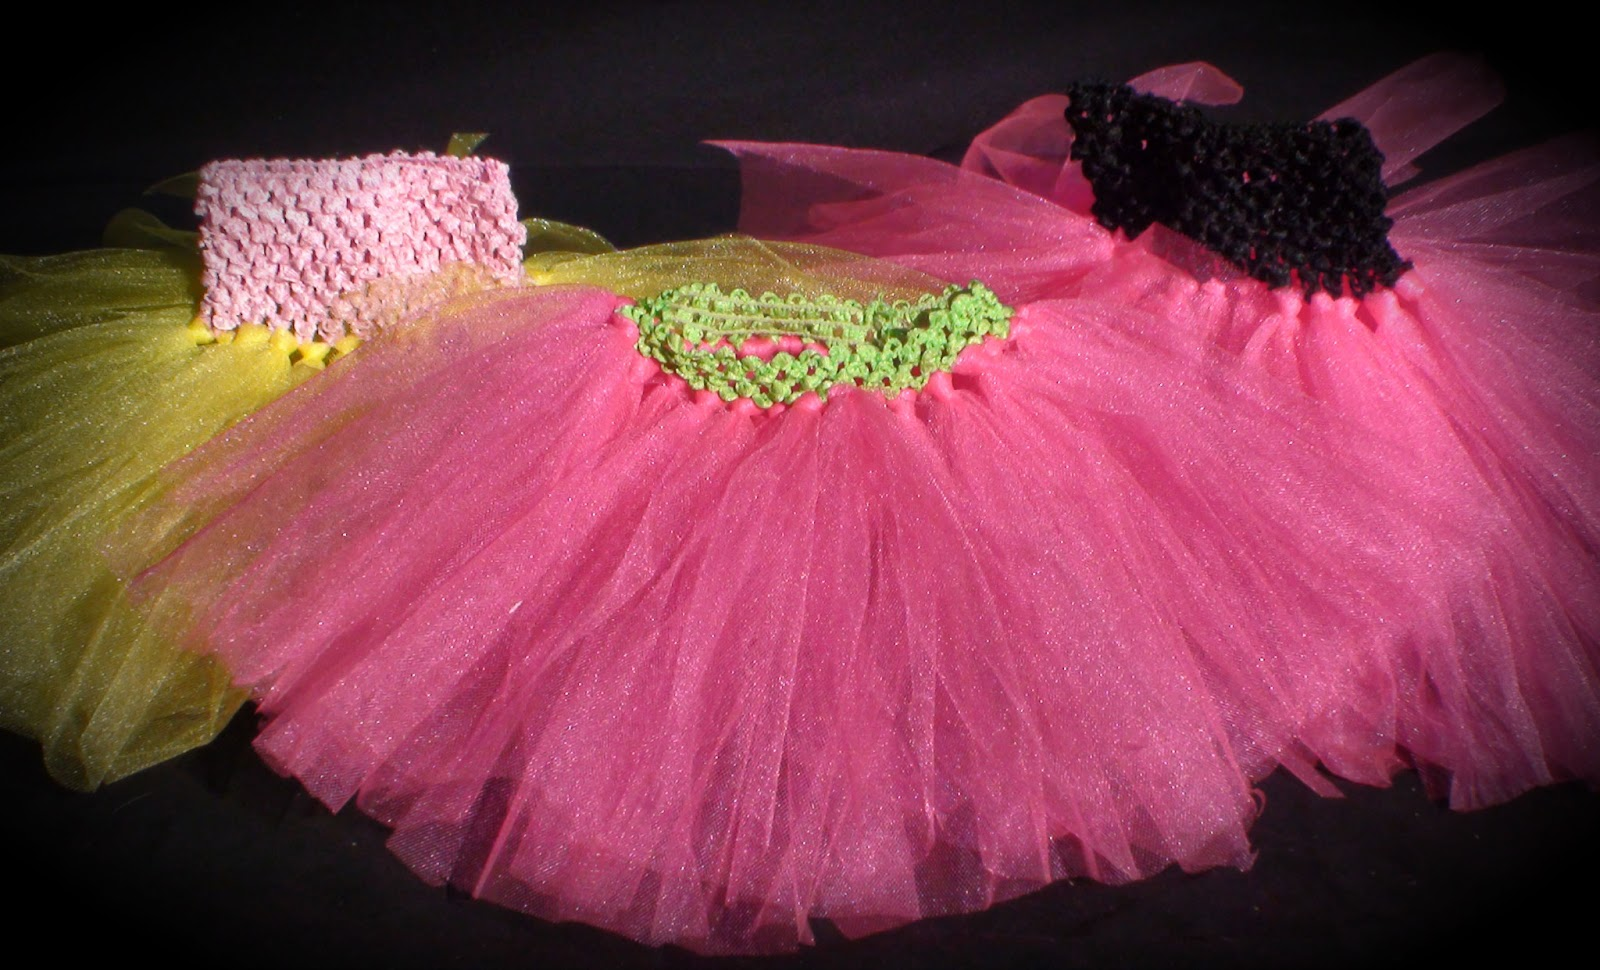 Tulle fabric has a lot of different uses. Of course, here at Tutu Girl, we use it for tutus! We are confident when we say our tu tus are made with the best quality, premium quality apparel tulle fabric. This tutu fabric is soft with tiny holes. Don't mistake our tulle with the scratchy, larger holed hex tulle.